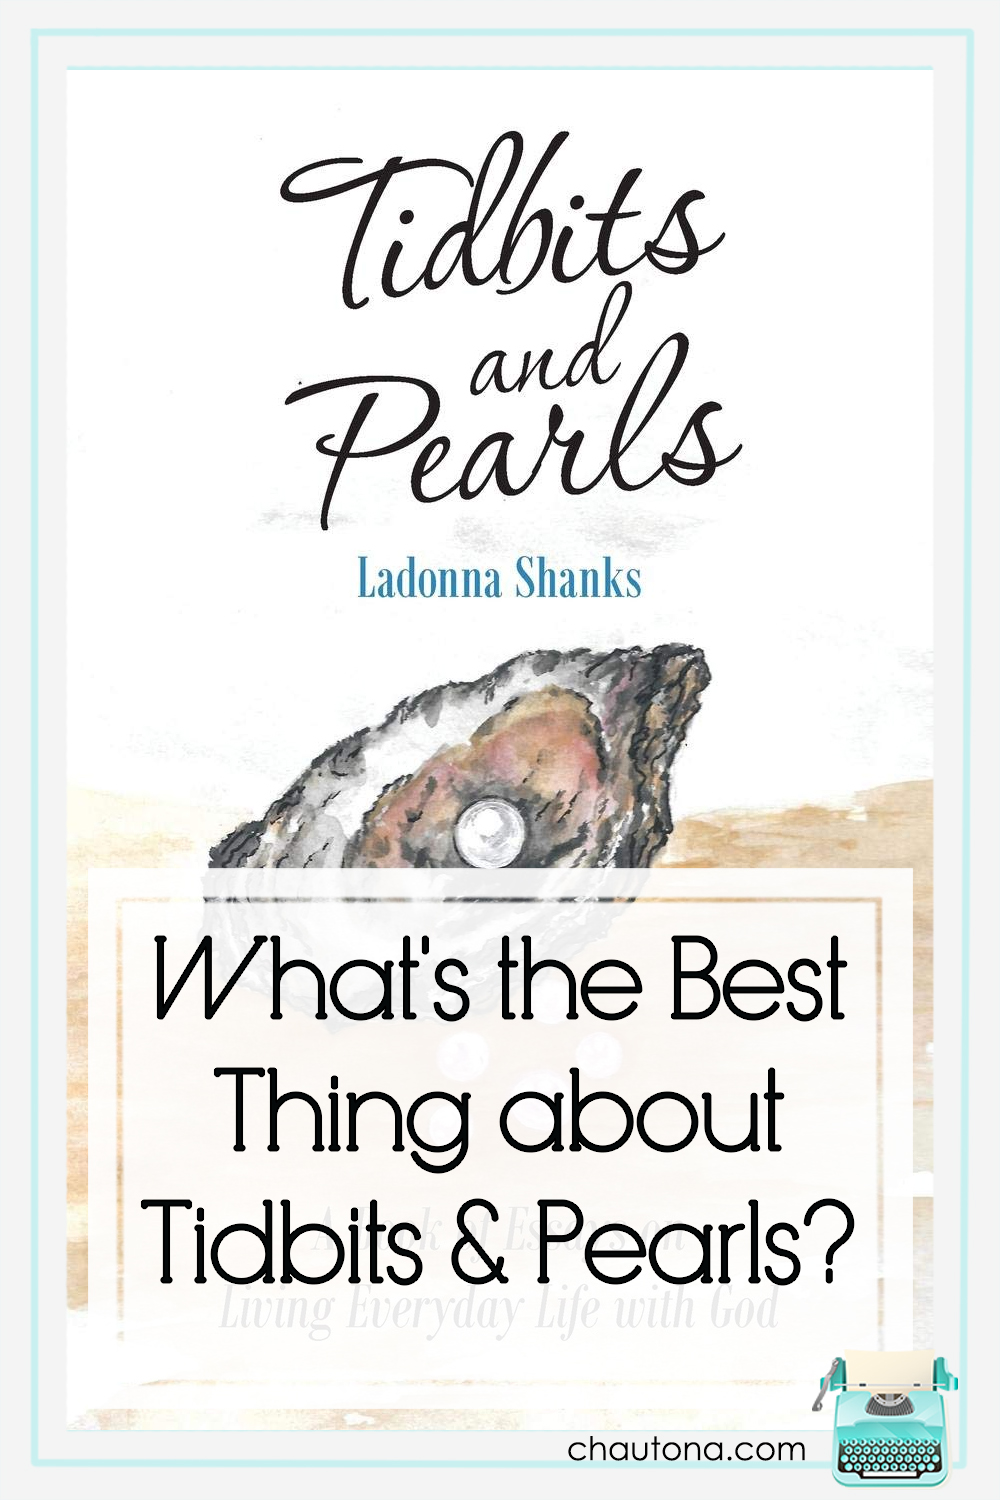 Tidbits and Pearls is a little bit of grandma's wisdom stirred in with a lot of life experience and filtered through the lens of God's Word. via @chautonahavig